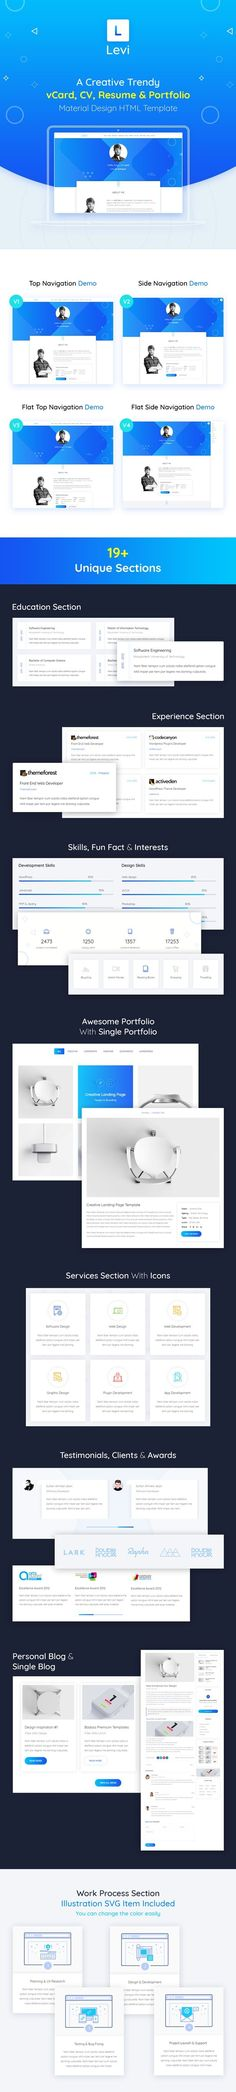 Whole - Responsive Business Multi-Purpose PSD Template #creative - resume education section